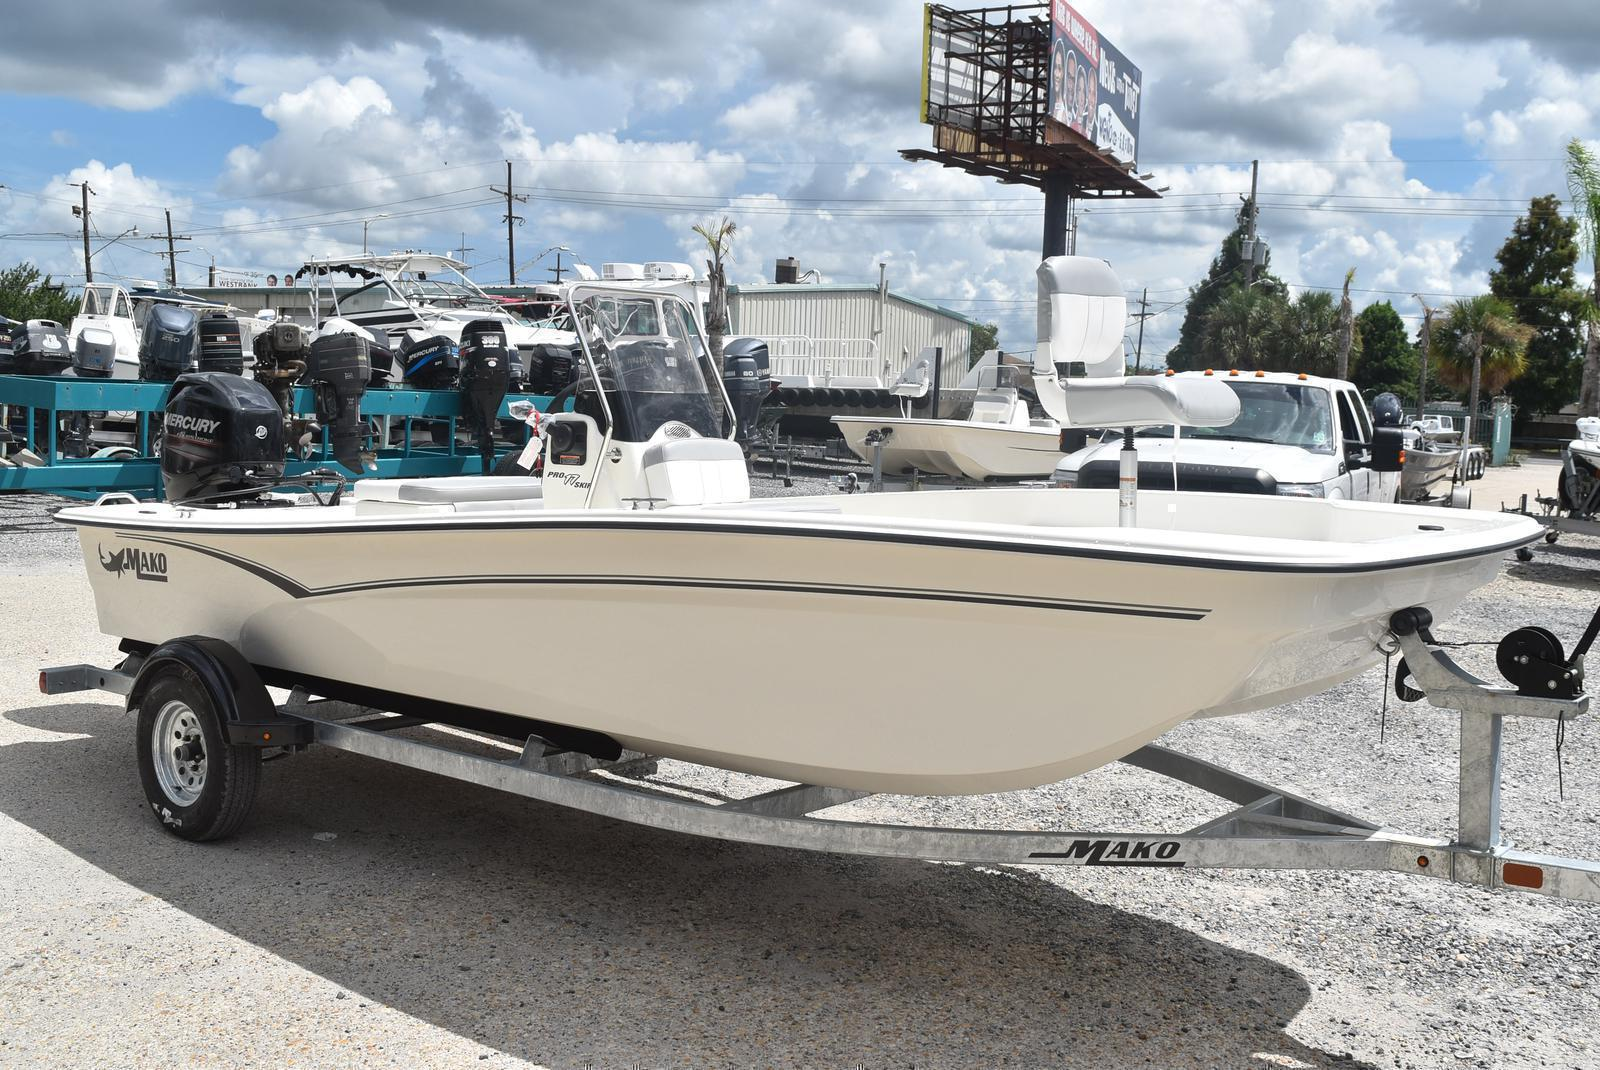 2020 Mako boat for sale, model of the boat is Pro Skiff 17, 75 ELPT & Image # 633 of 702